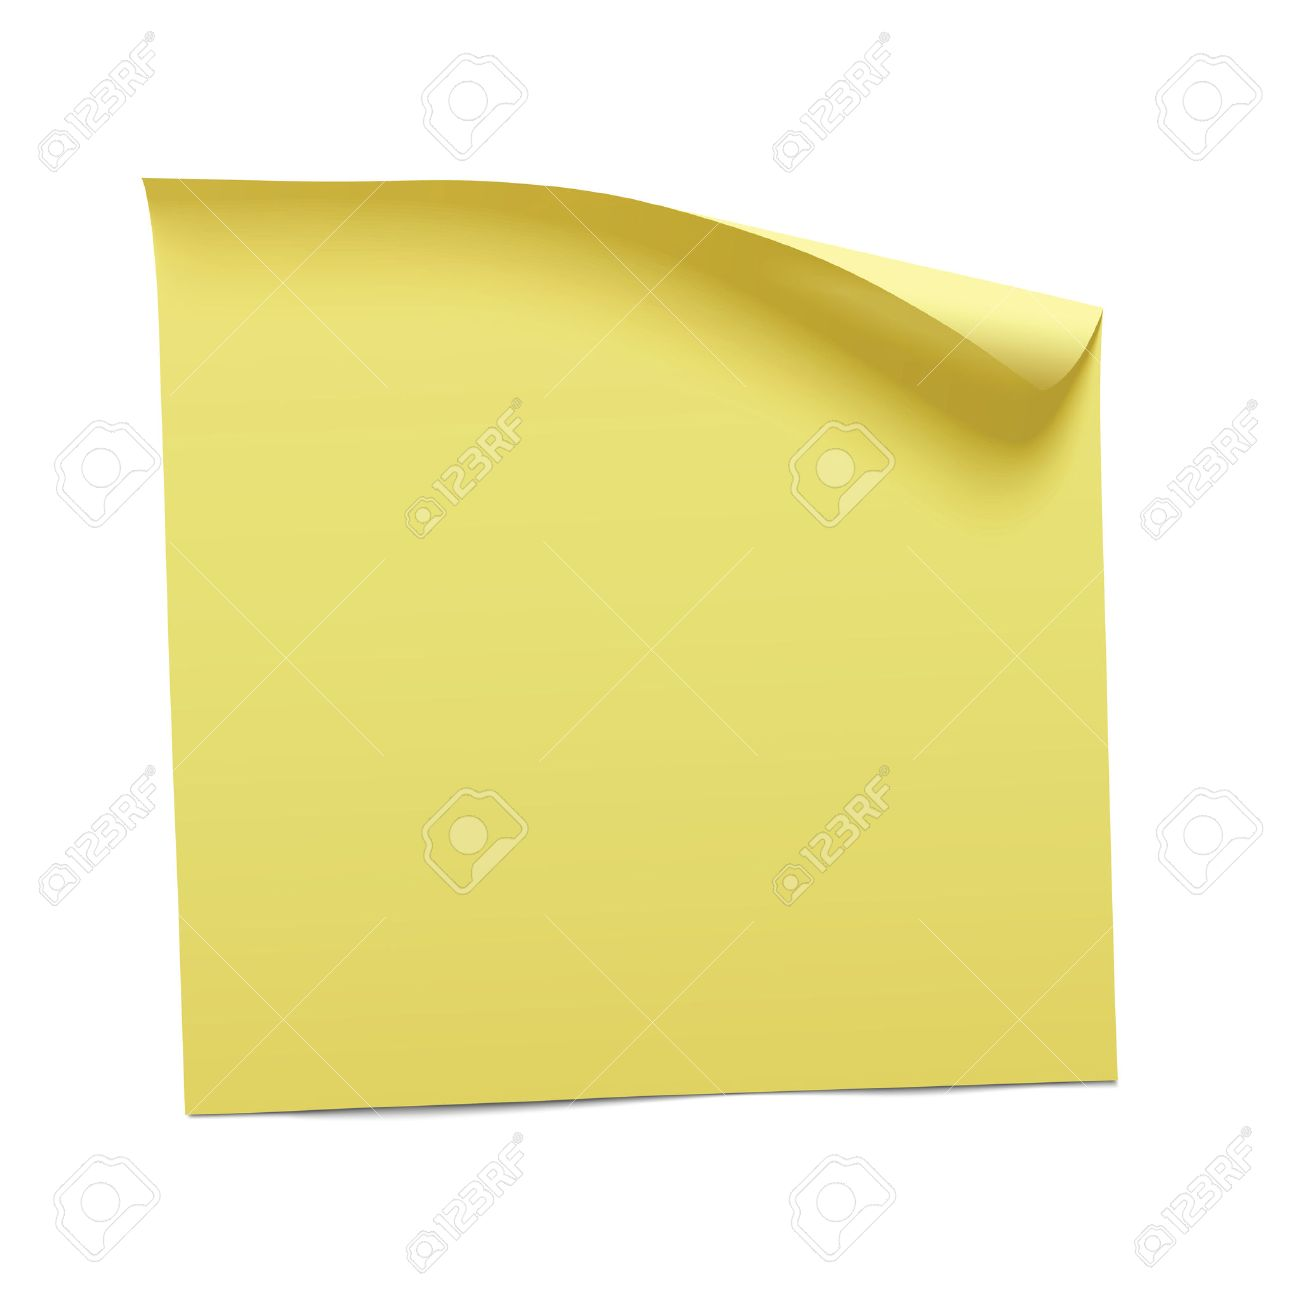 yellow sticky note, vector - 51582160